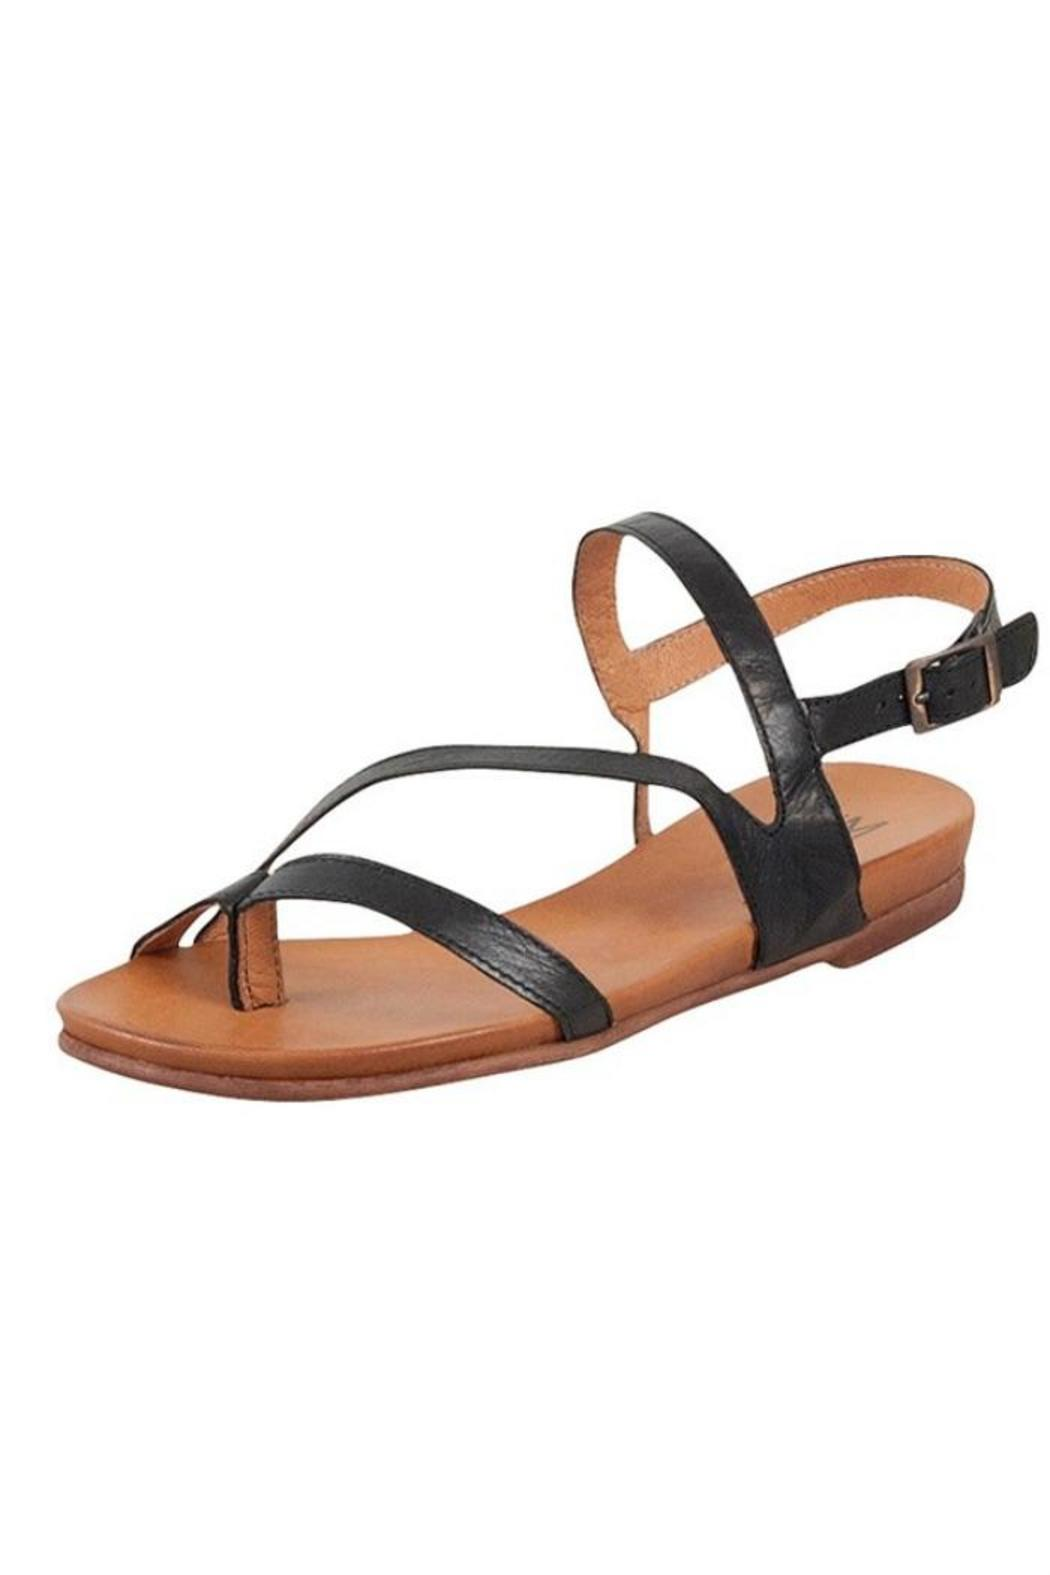 Miz Mooz Alana Sandal From Providence By Queen Of Hearts